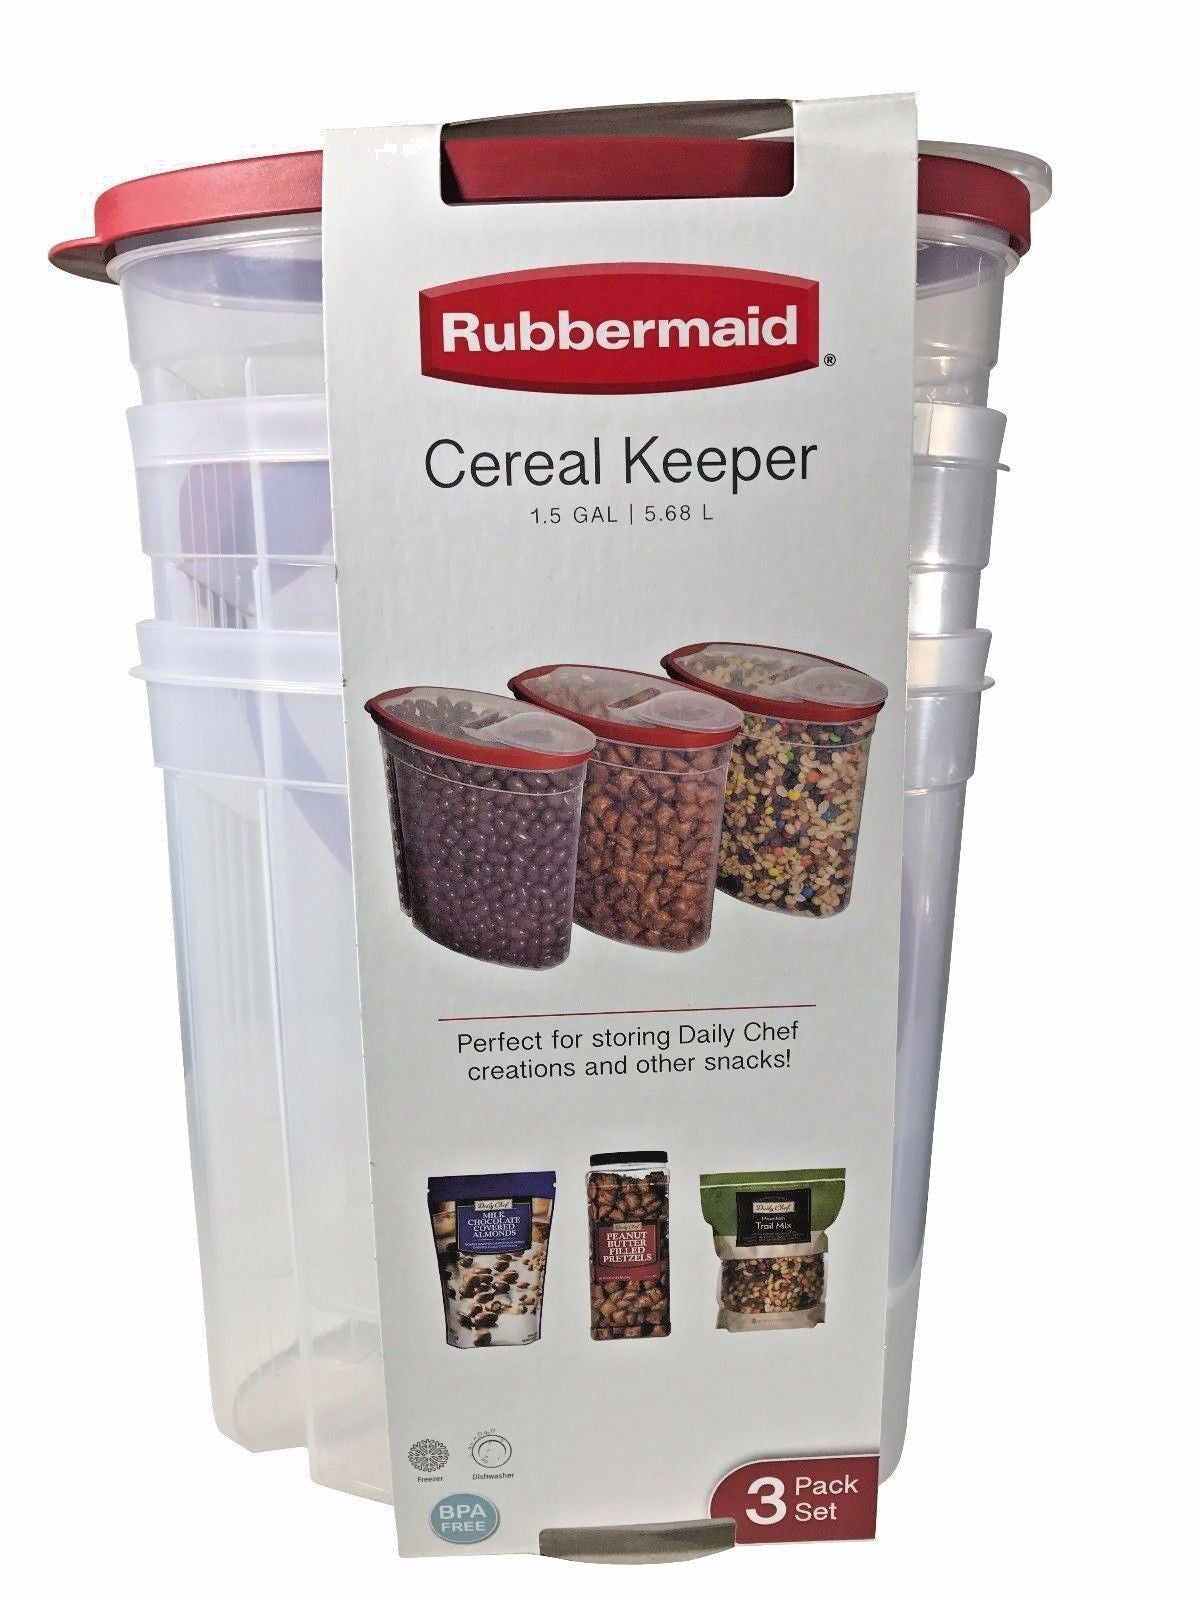 1.5-Gallon Rubbermaid Cereal Keeper